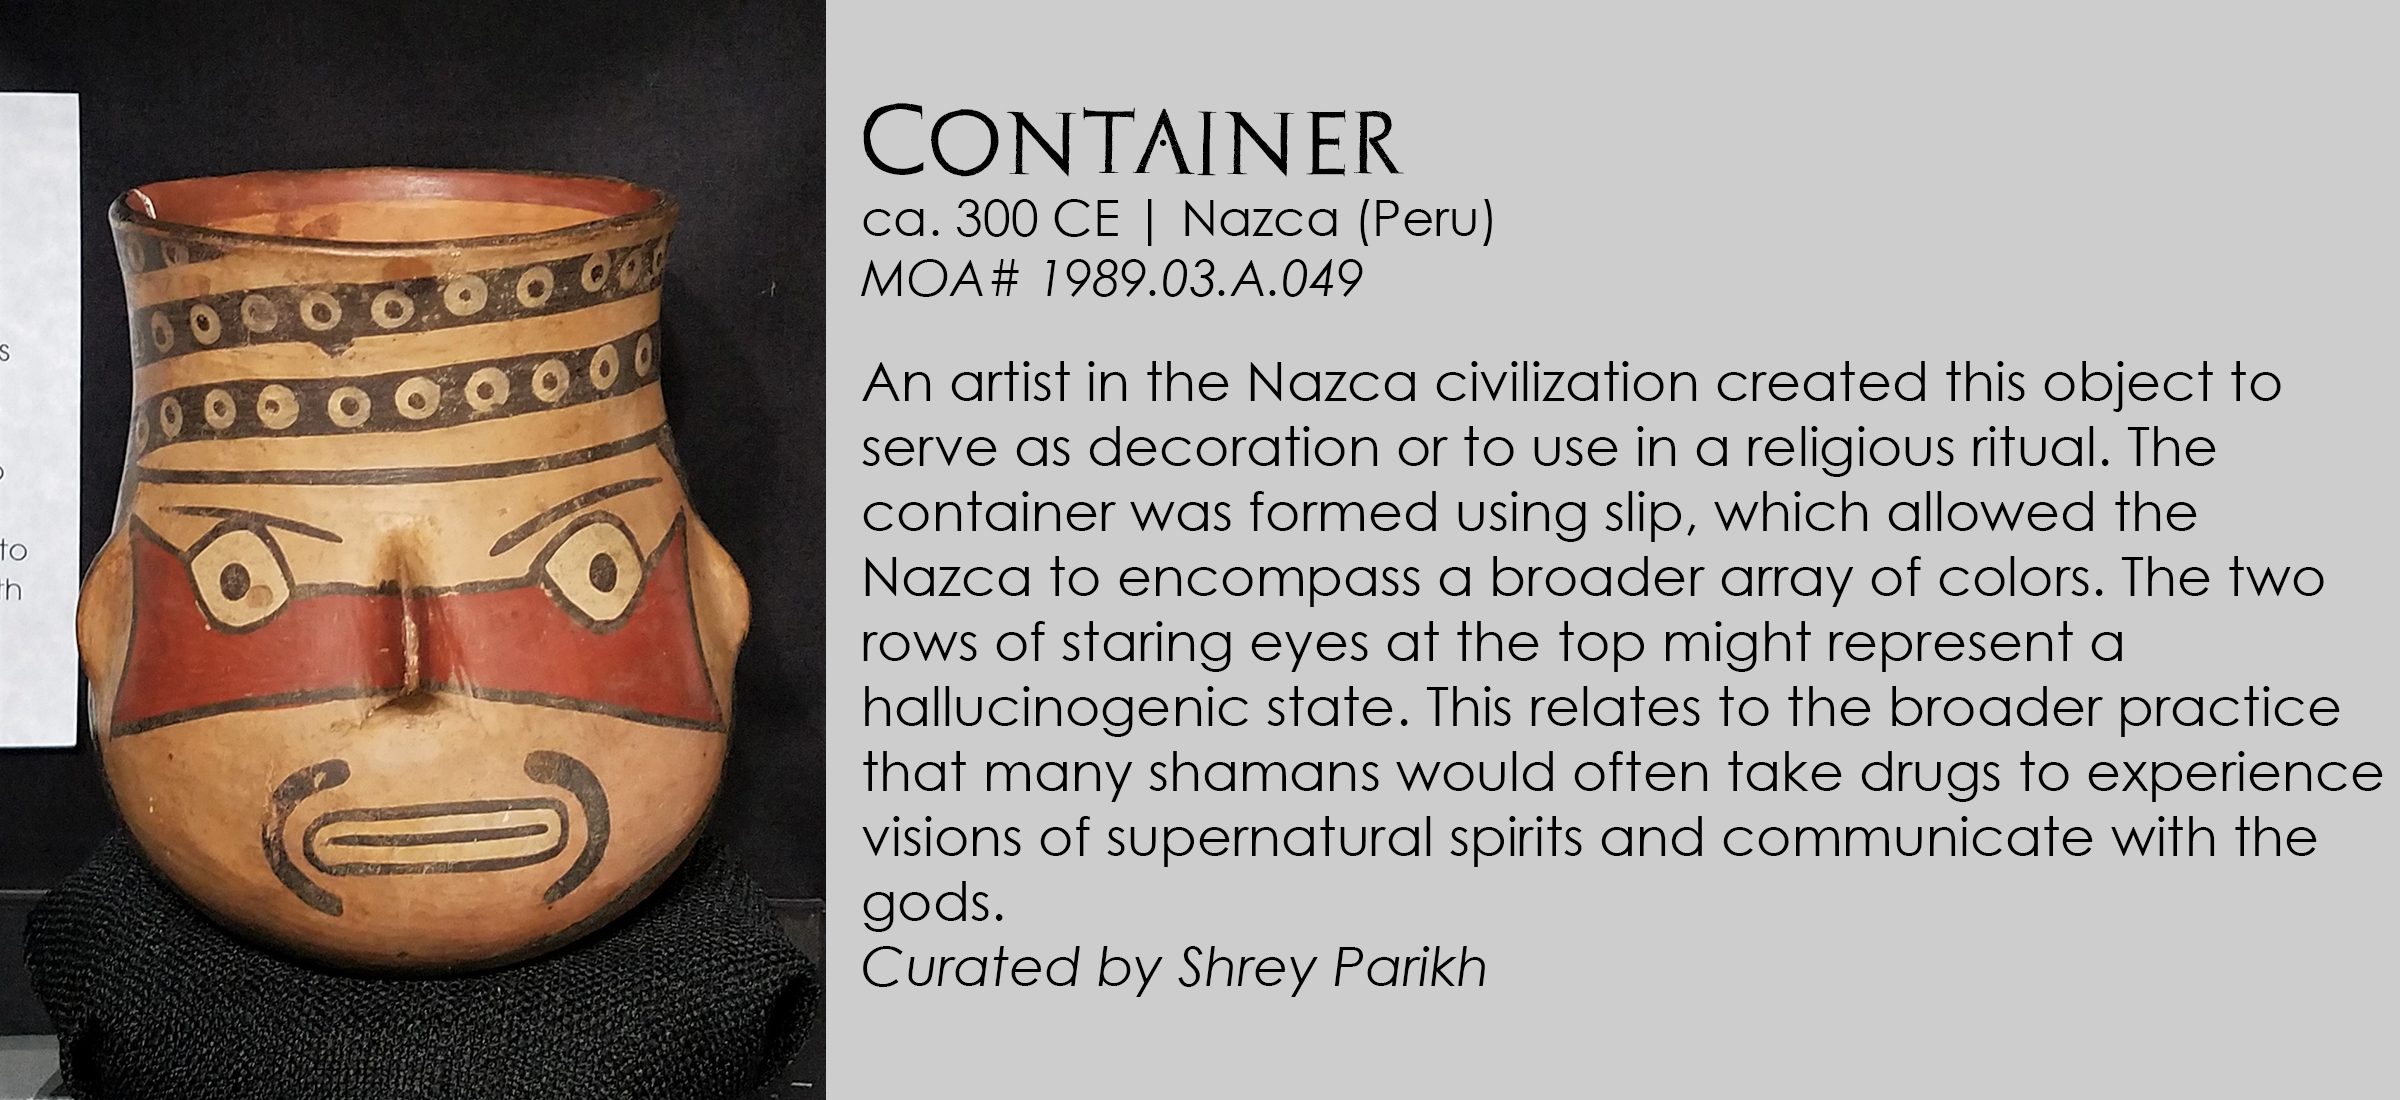 Nazca container from Peru